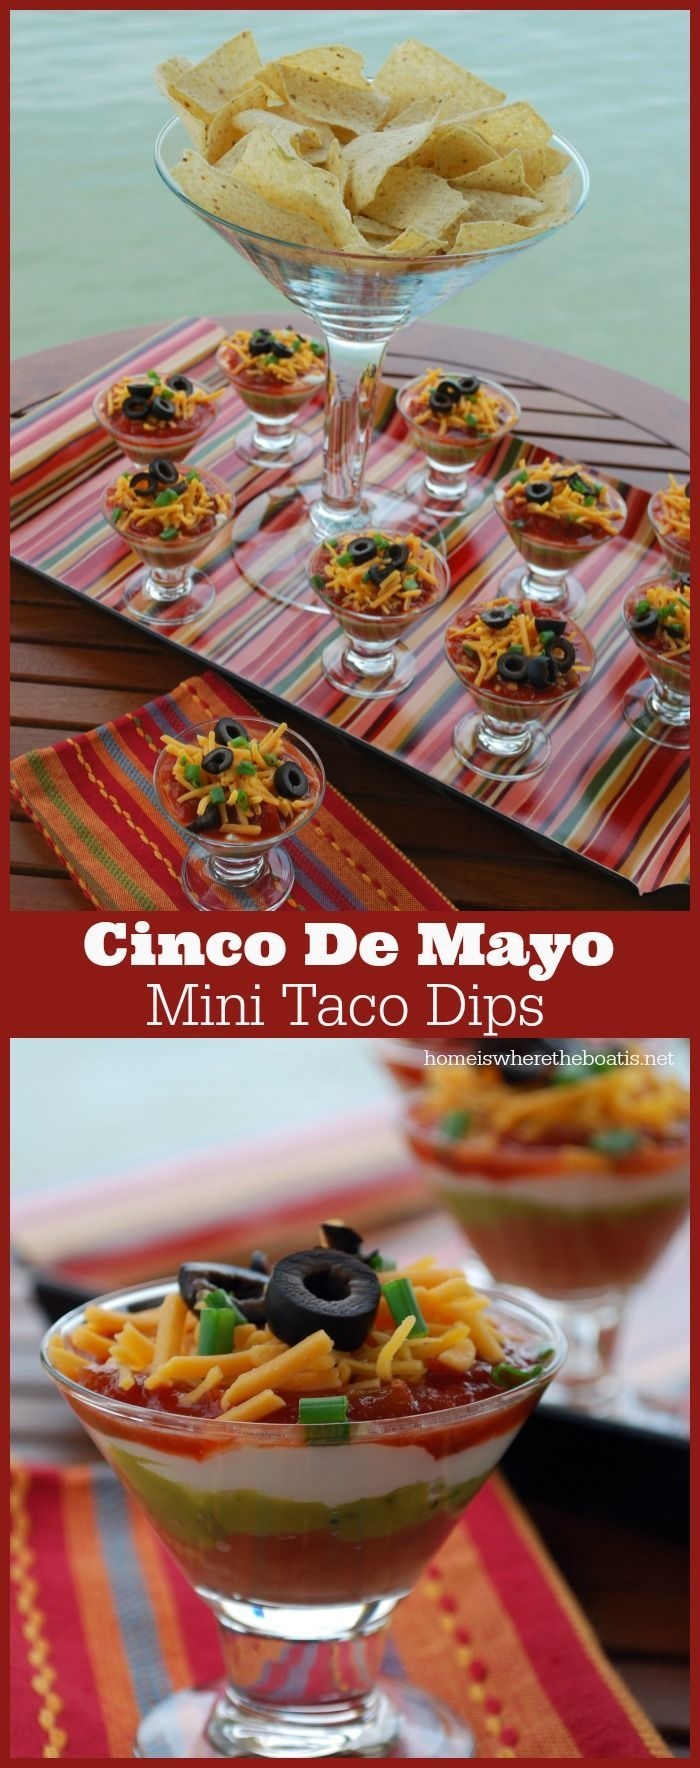 Mini Taco Dips | homeiswheretheboatis.net #CincodeMayo #fiesta #party #recipe